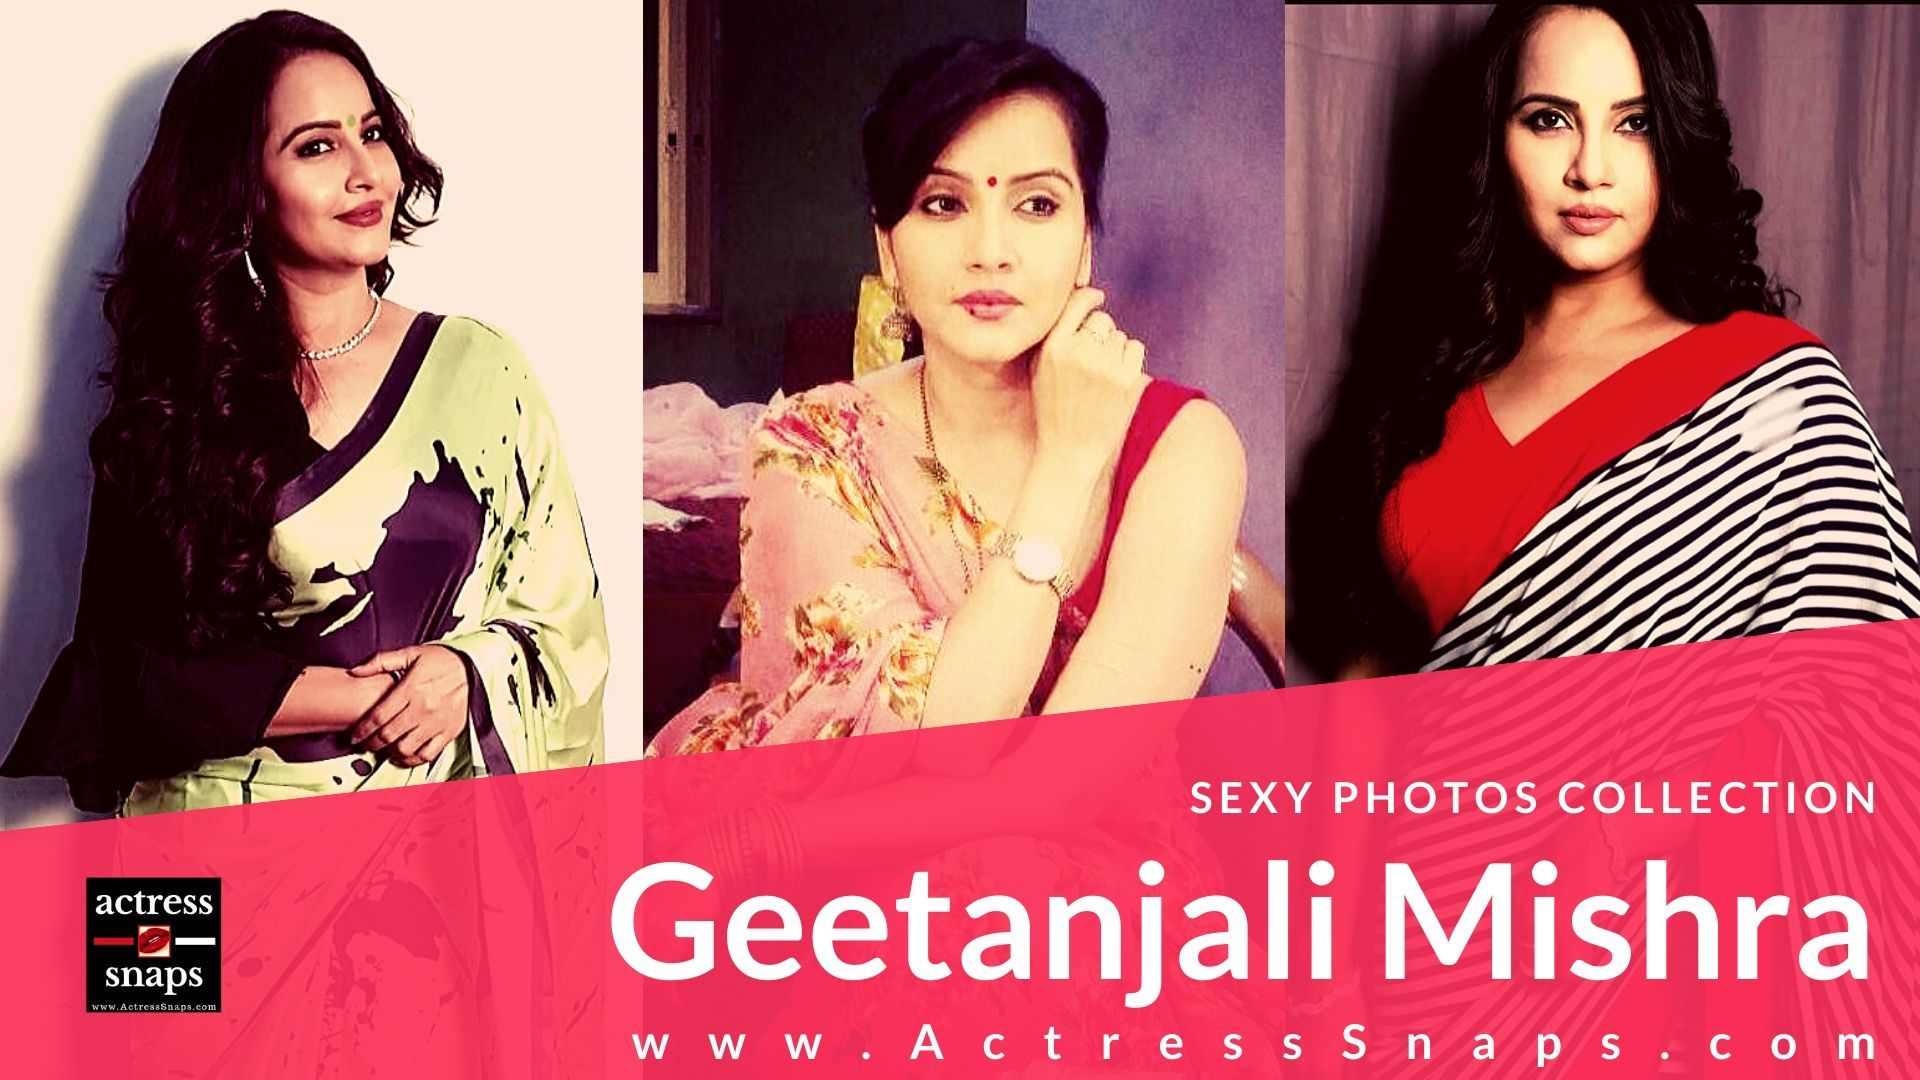 Geethanjali Mishra Photos Collection - Sexy Actress Pictures | Hot Actress Pictures - ActressSnaps.com